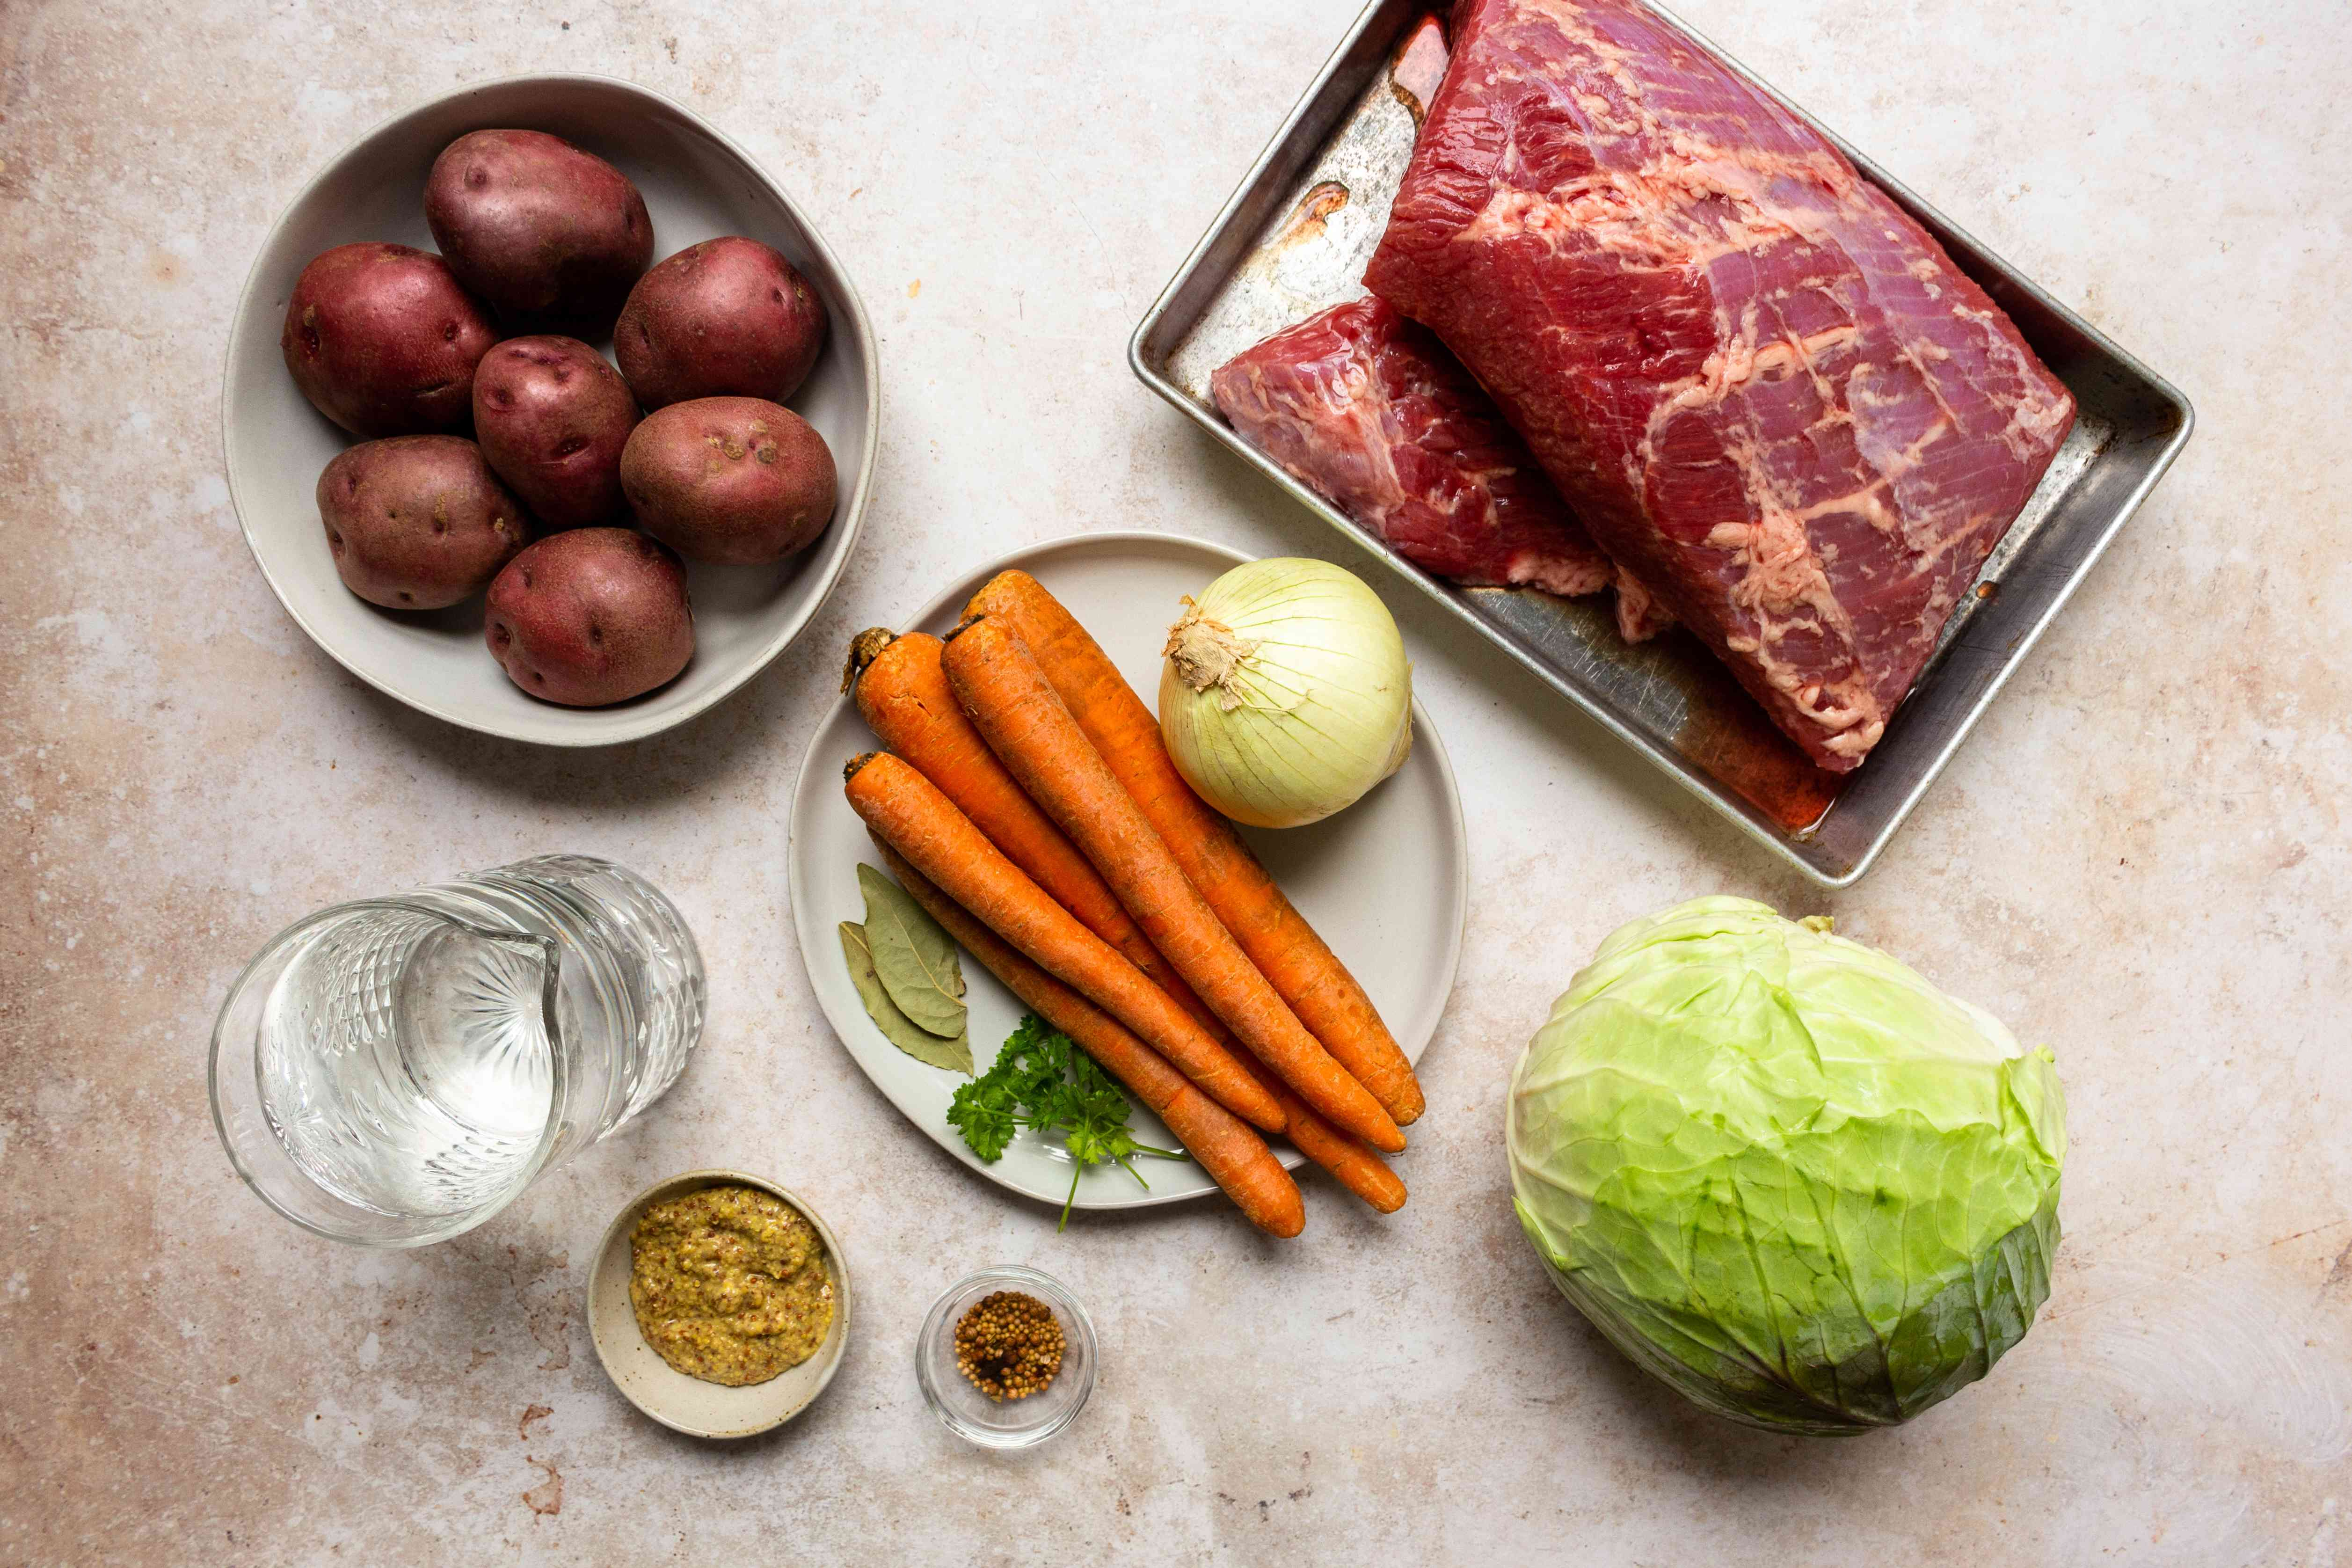 Ingredients for pressure cooker corned beef and cabbage